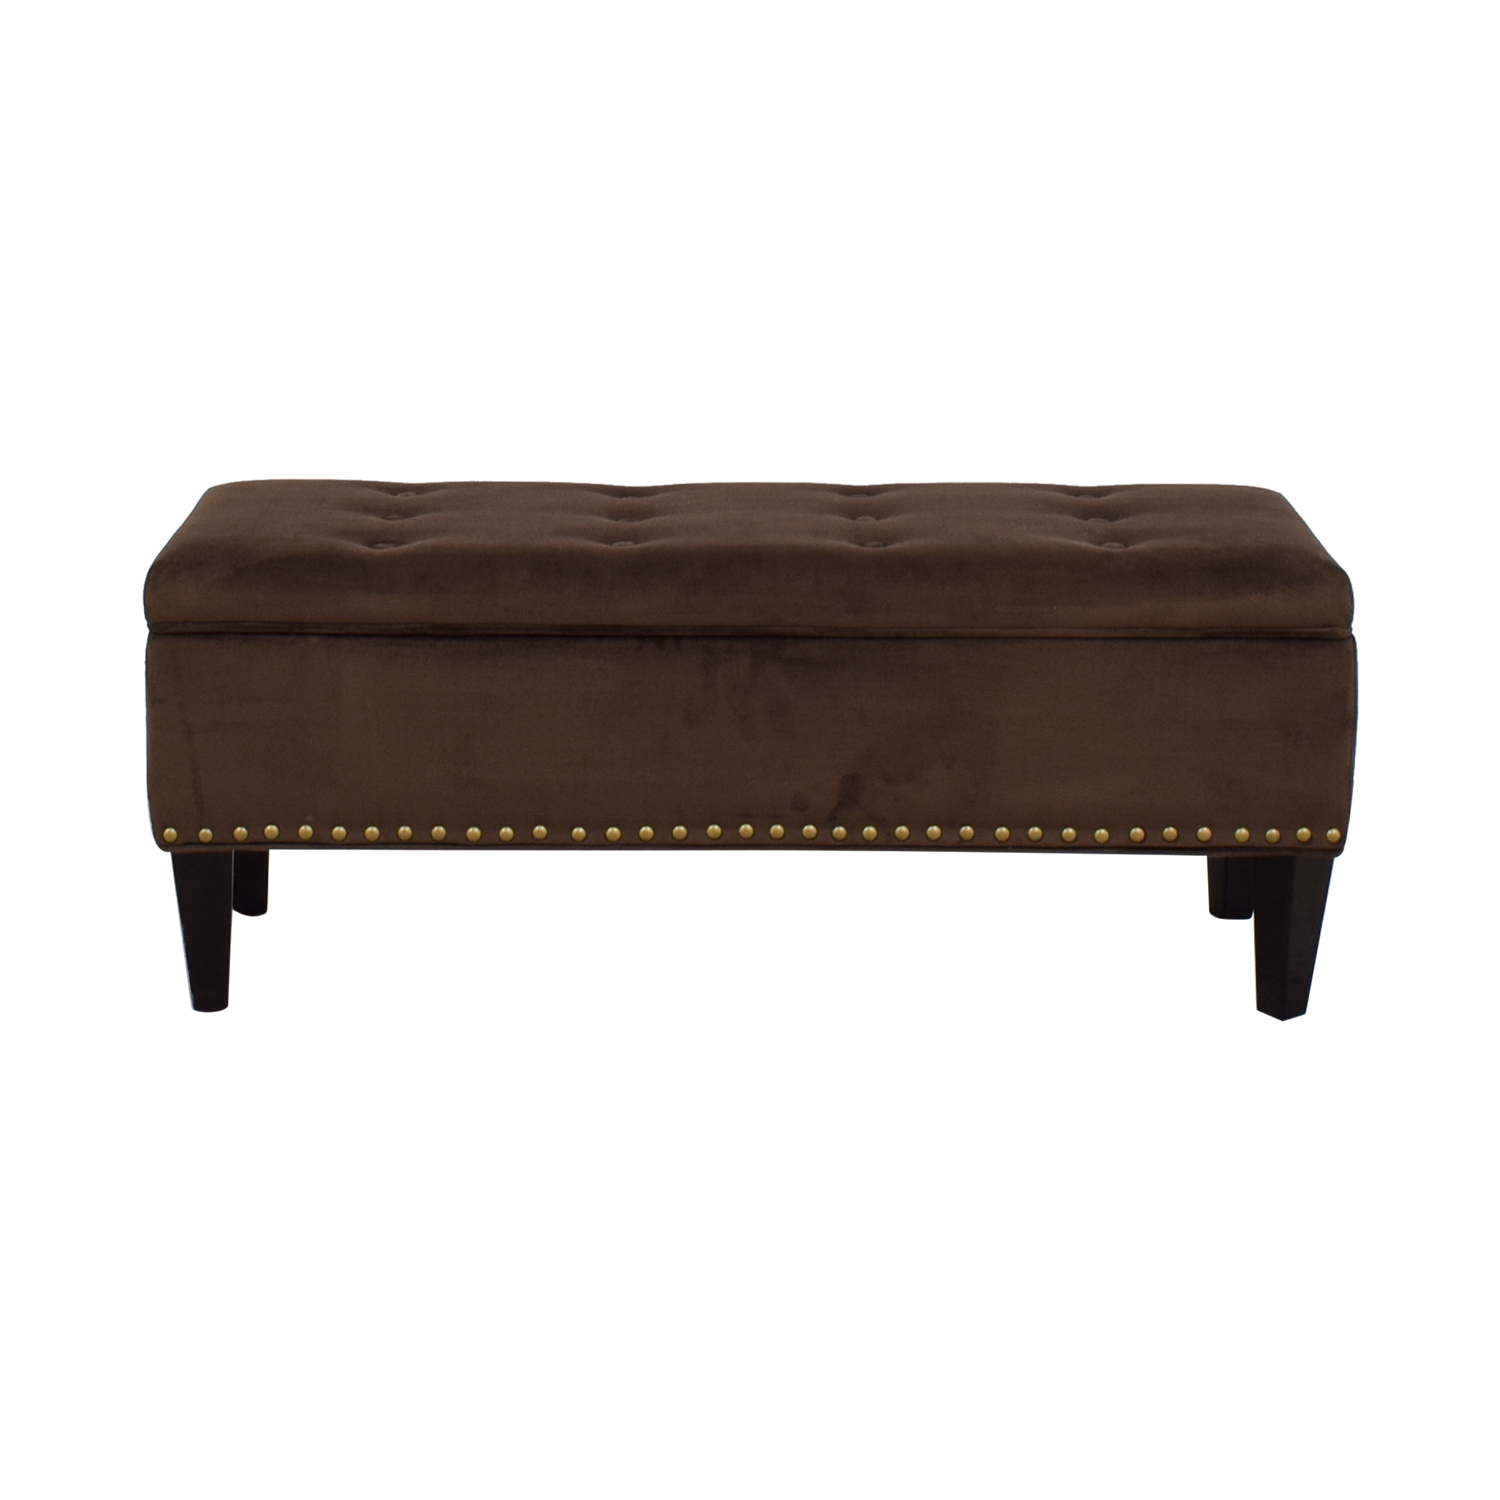 Brown Tufted Nailhead Storage Ottoman